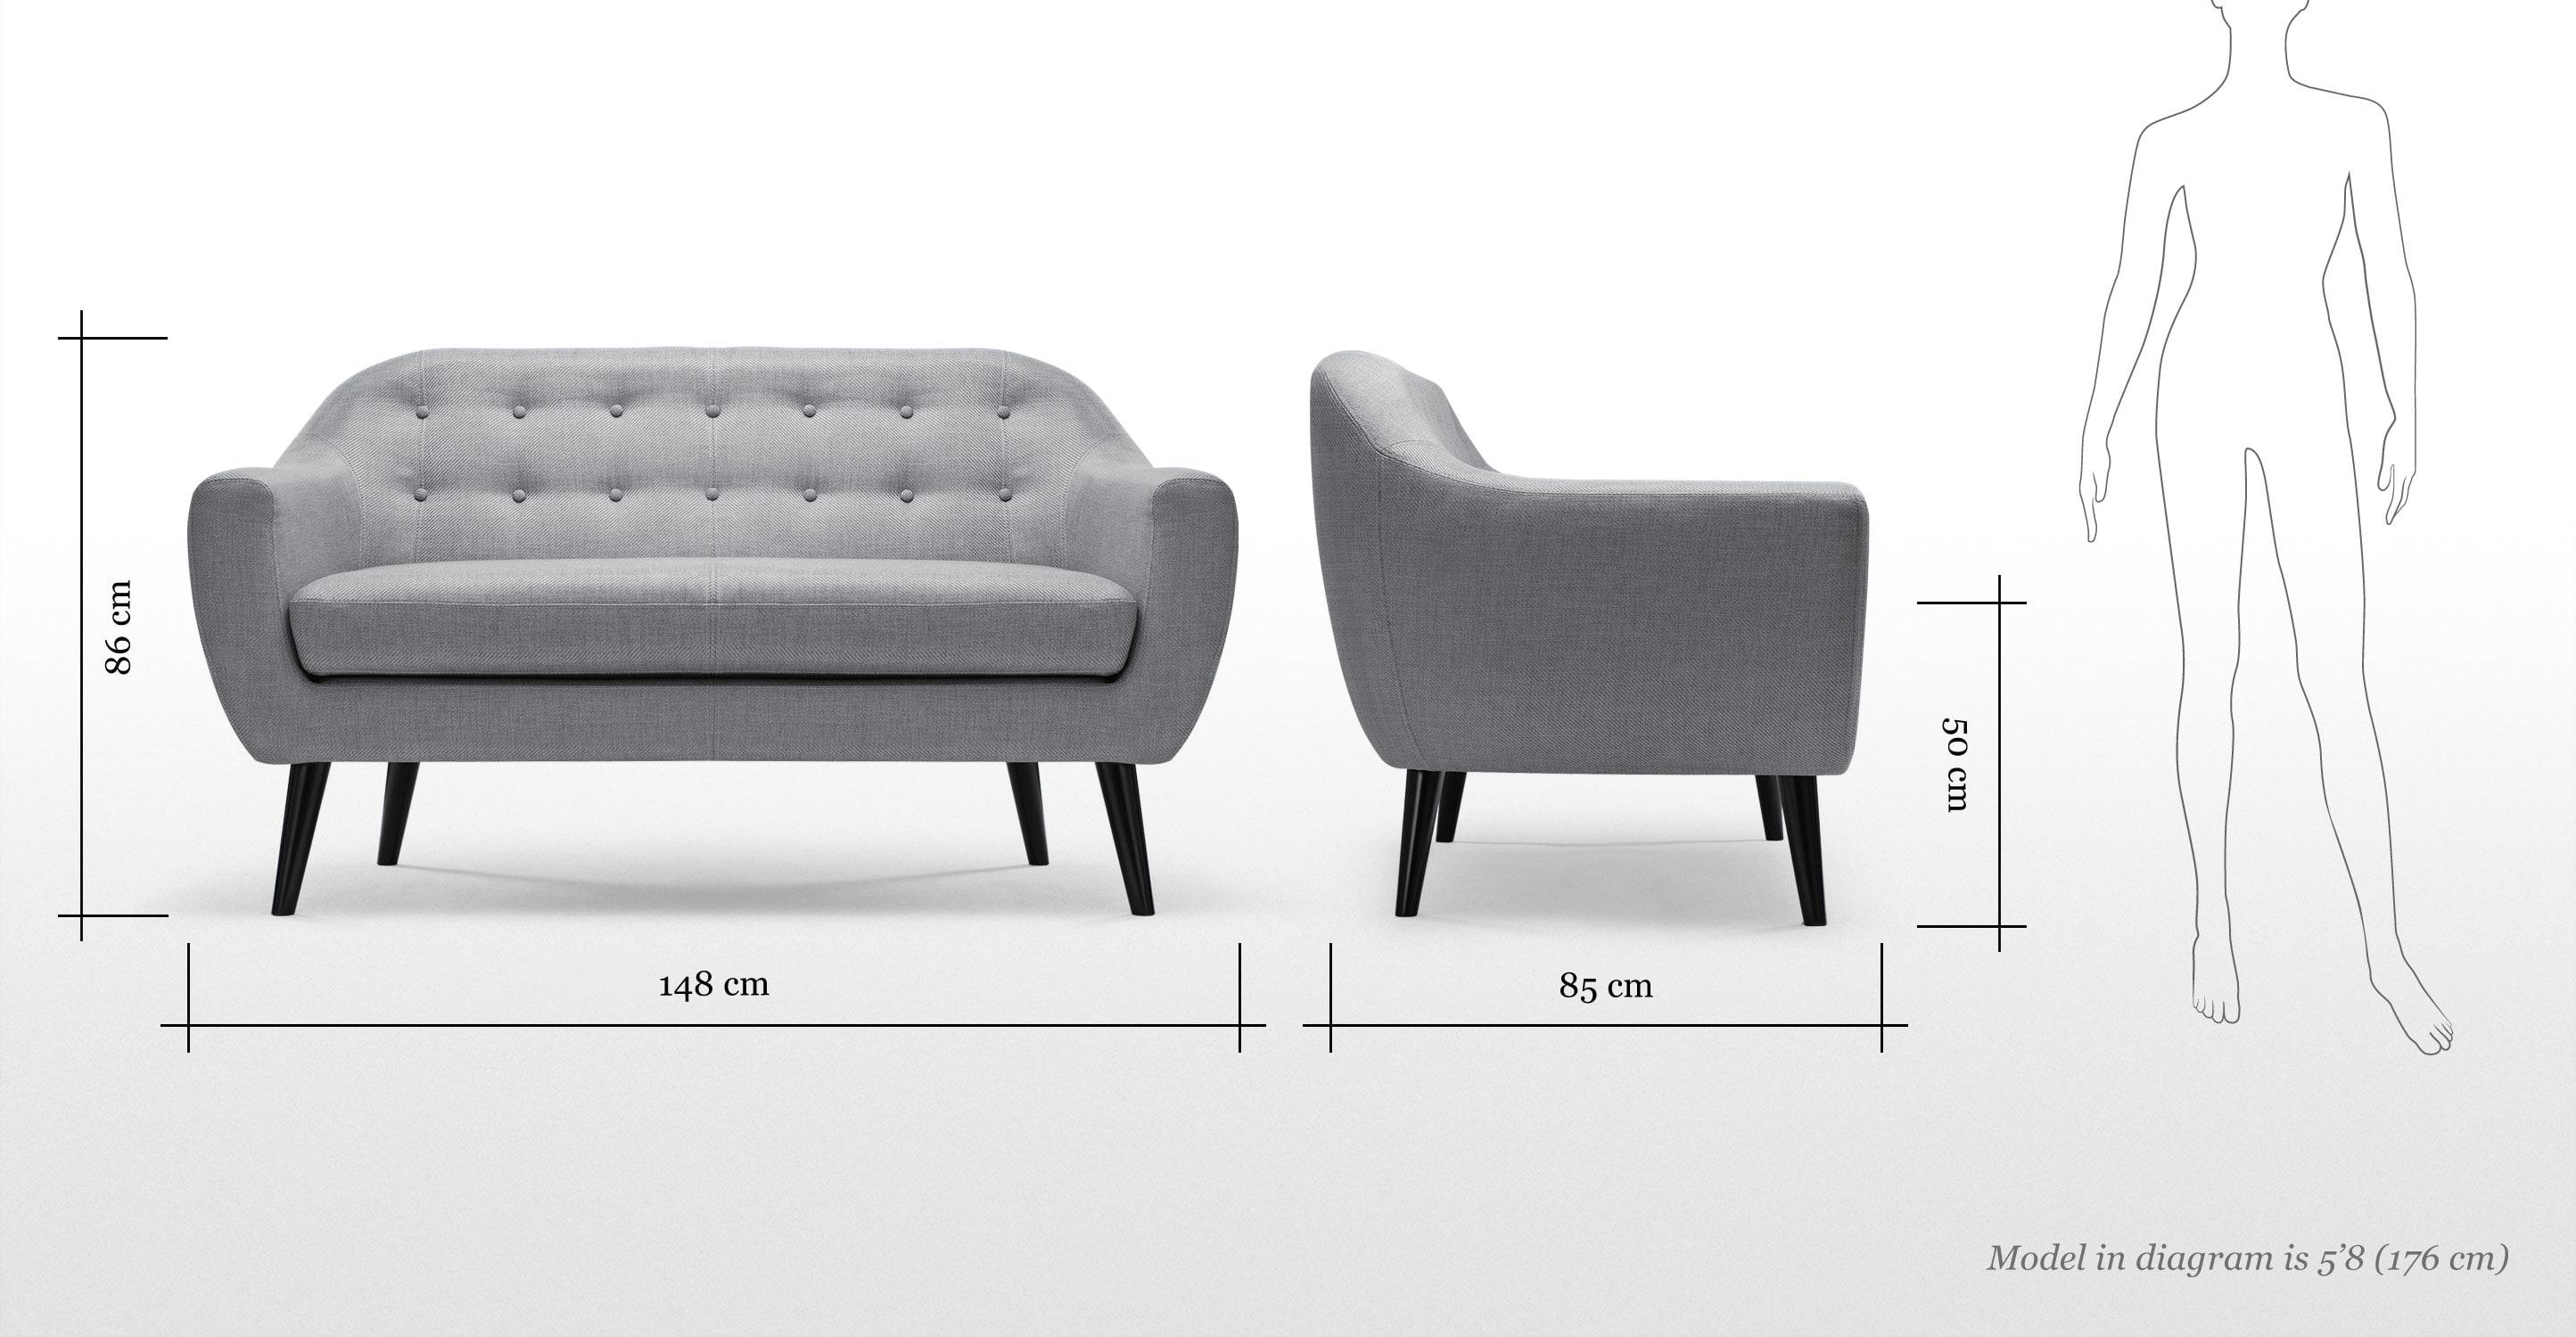 Ritchie 2 Seater Sofa In Pearl Grey | Made For 2 Seater Sofas (View 10 of 20)